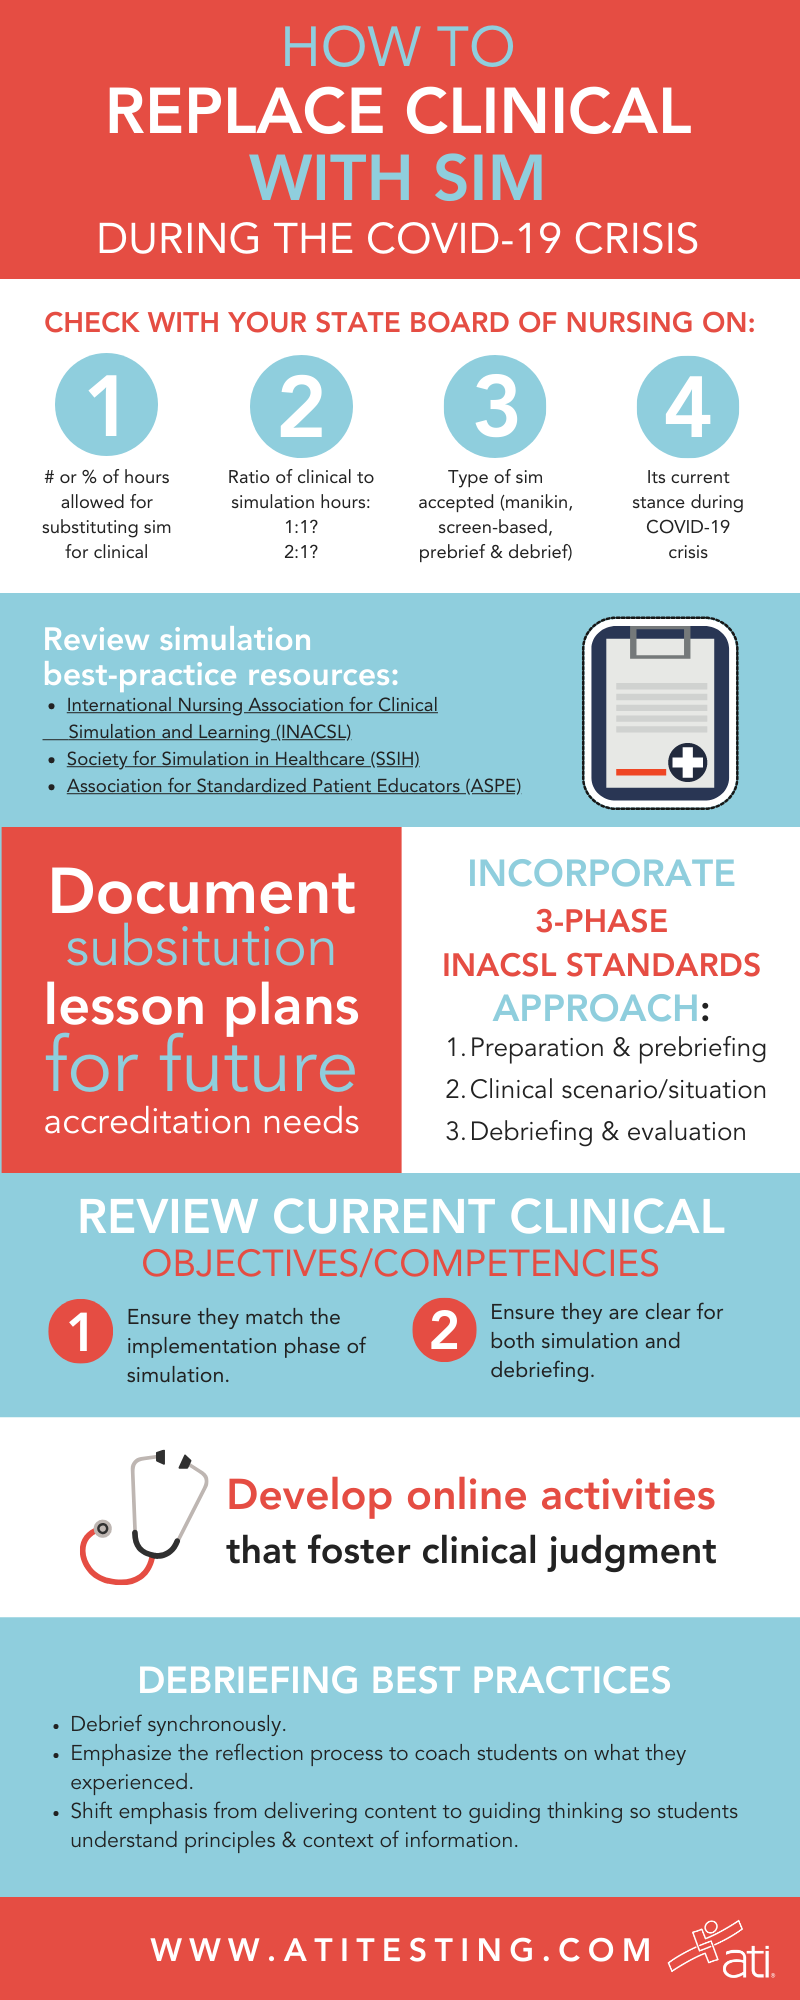 how to replace clinical with sim during the covid-19 crisis v2